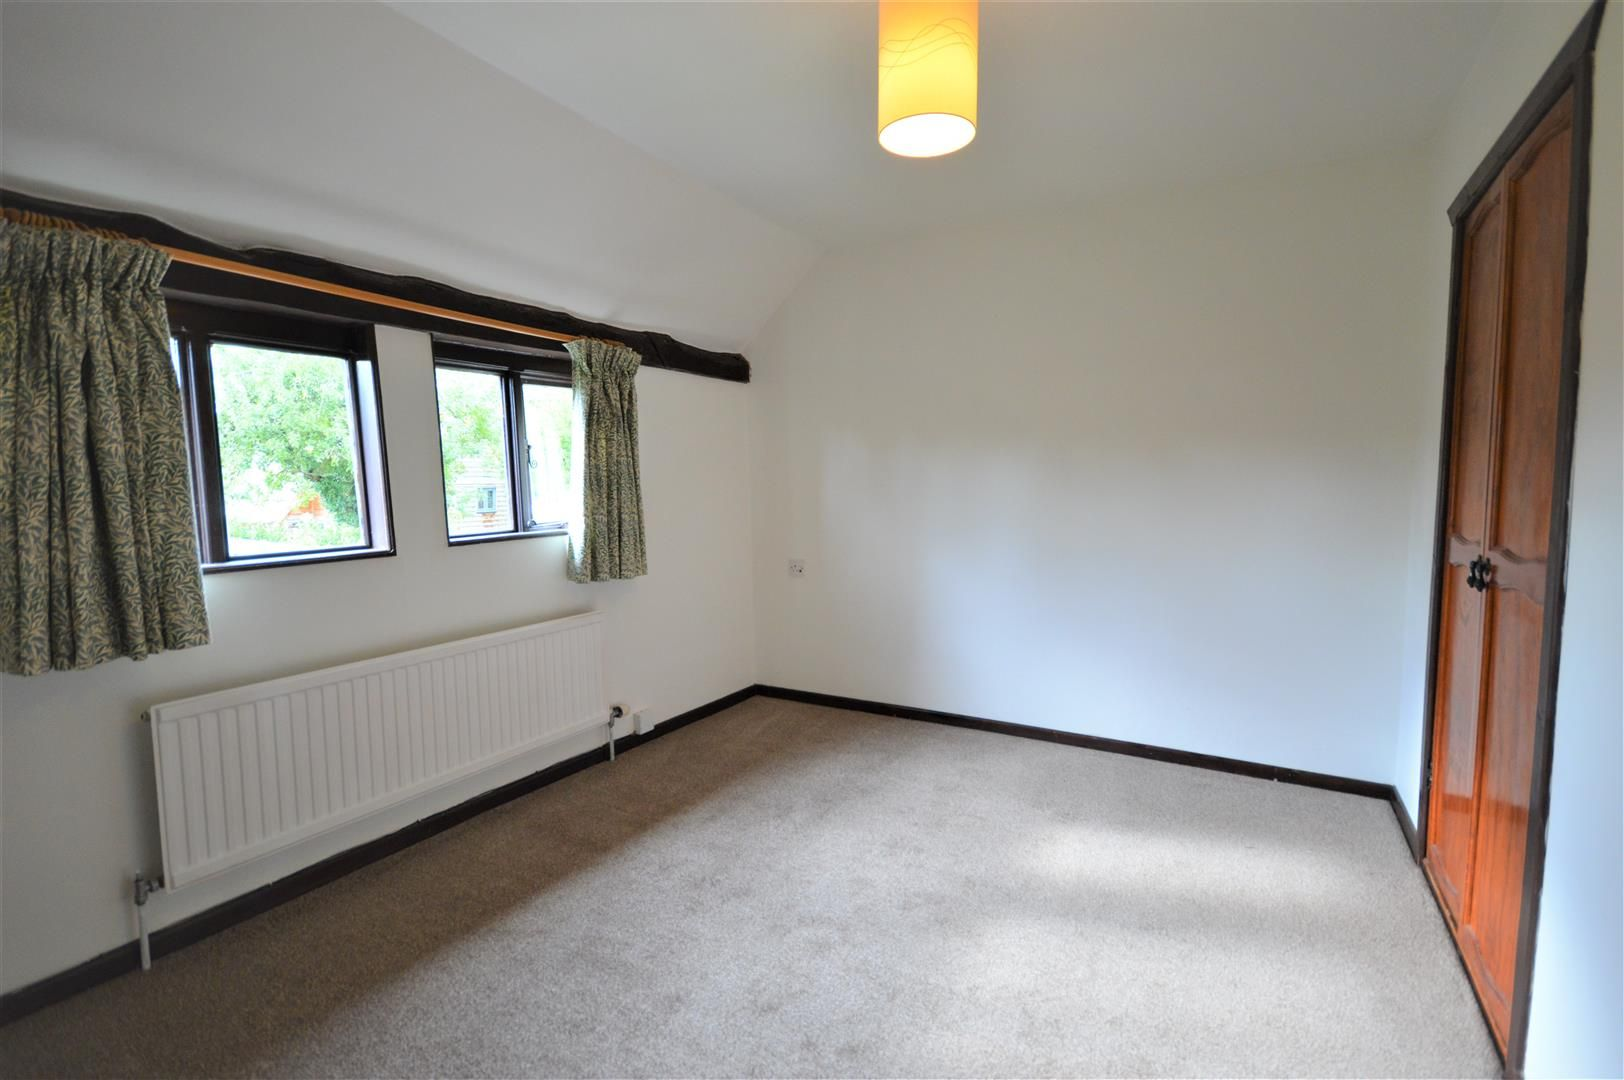 3 bed end of terrace for sale in Luston 8